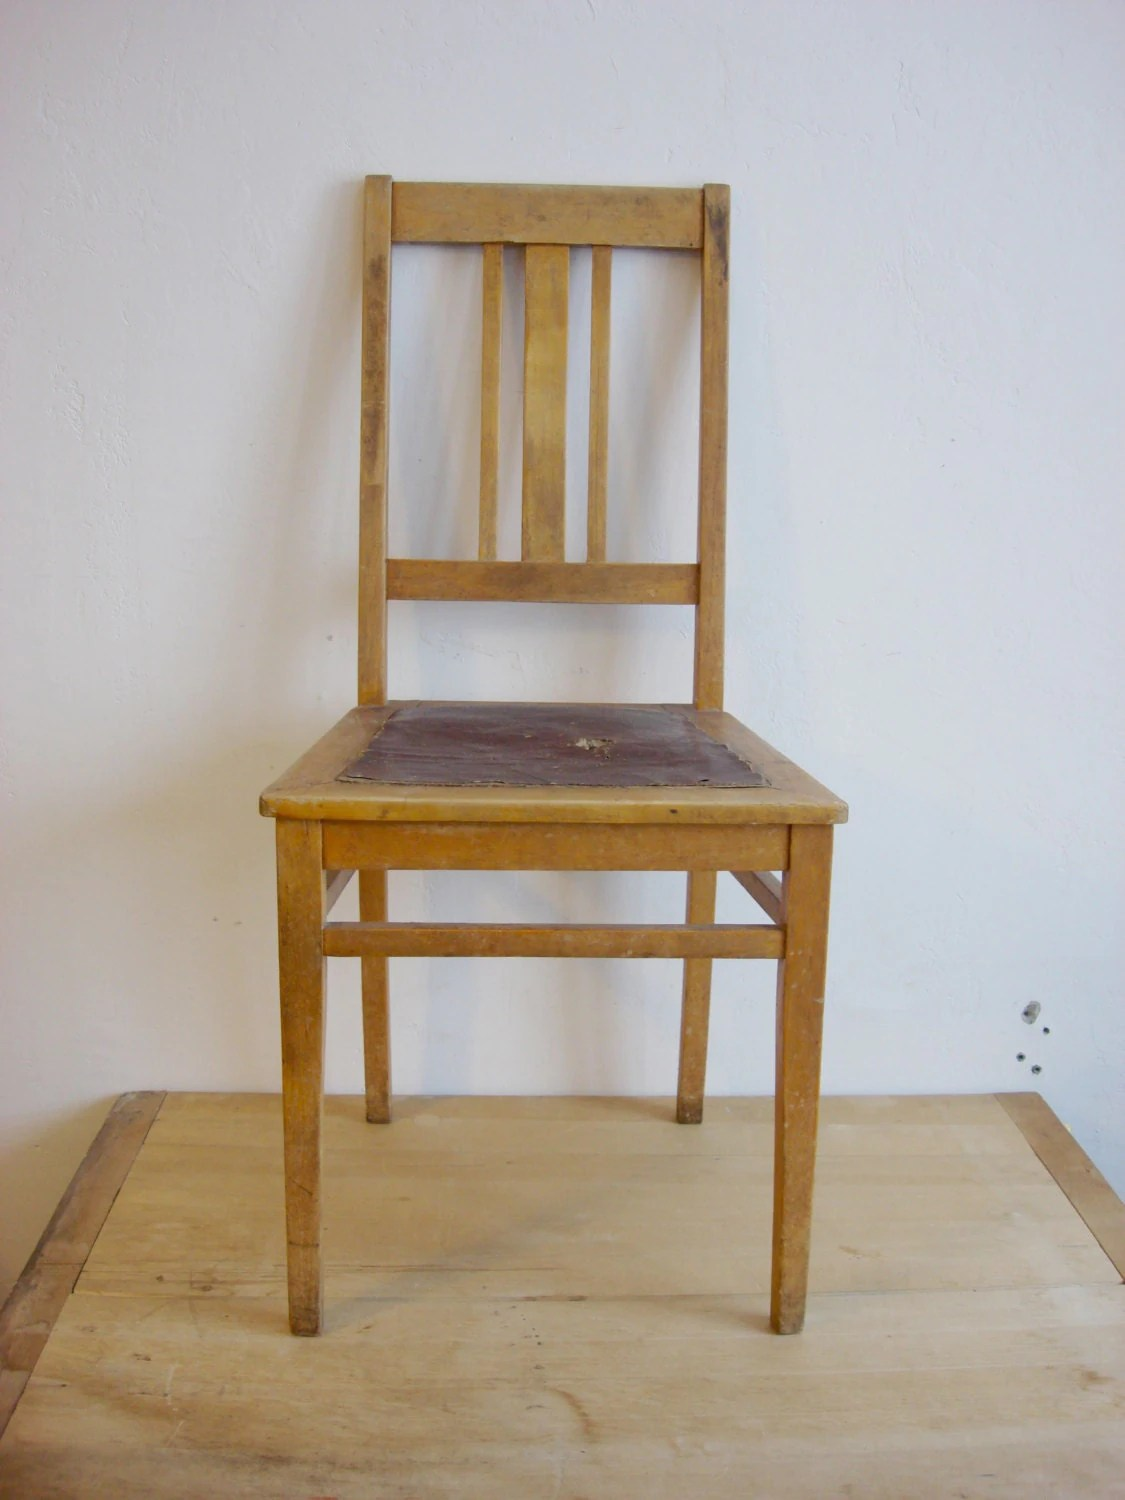 Antique Wooden Chair Antique Wooden Chair 1940s Oak Dining Room Furniture